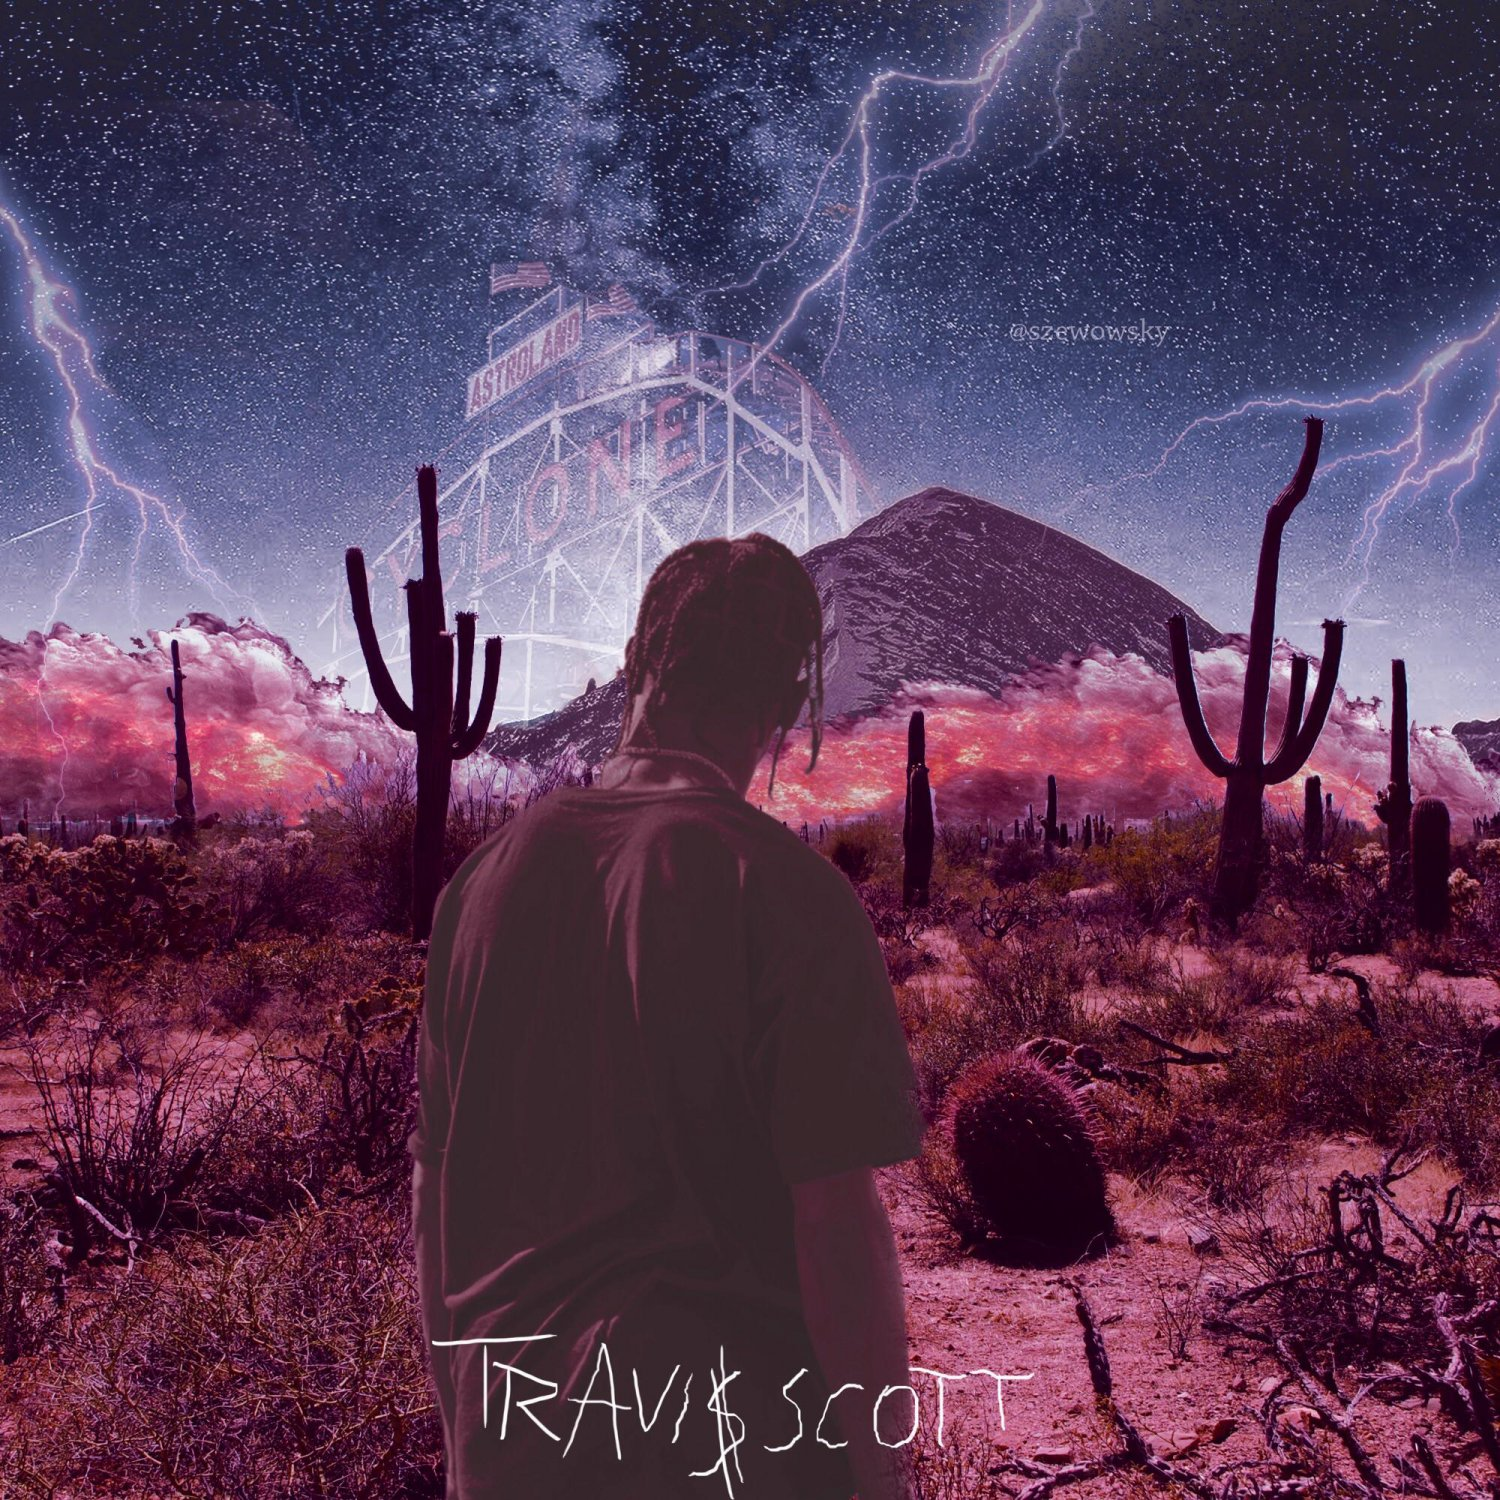 12x12 Poster Travis Scott Astroworld Poster 12x12 Inches